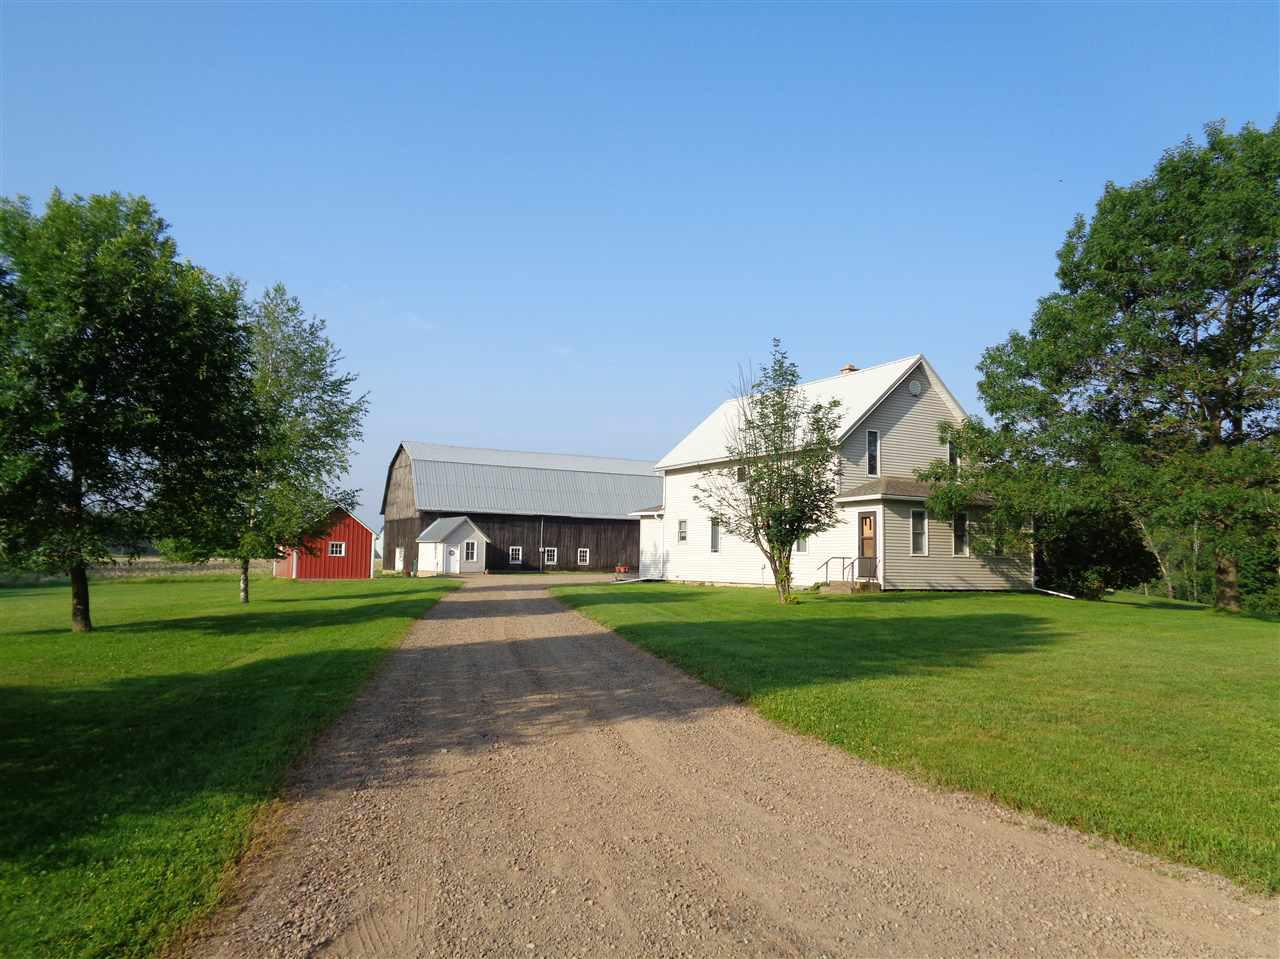 Remodeled country home or hobby farm on +/- 79.55 acres. 3 bedroom, 1.75 bathroom country home with spacious kitchen, main floor laundry and attached heated 3 car garage. Updates include remodeled first floor bathroom, added second floor bathroom and brand new master bedroom with walk-in closet. New dishwasher, stove, washer, dryer, flooring, trim/doors, plumbing, furnace, central air and custom Hunter Douglas blinds. Barn with stanchions, barn cleaner and 4 sheds. The +/- 79.55 acres is a mix of tillable and wooded land. This property was previously used as a fully operational beef farm. The stove, microwave, dishwasher, washer, dryer and window treatments are included in the sale price.